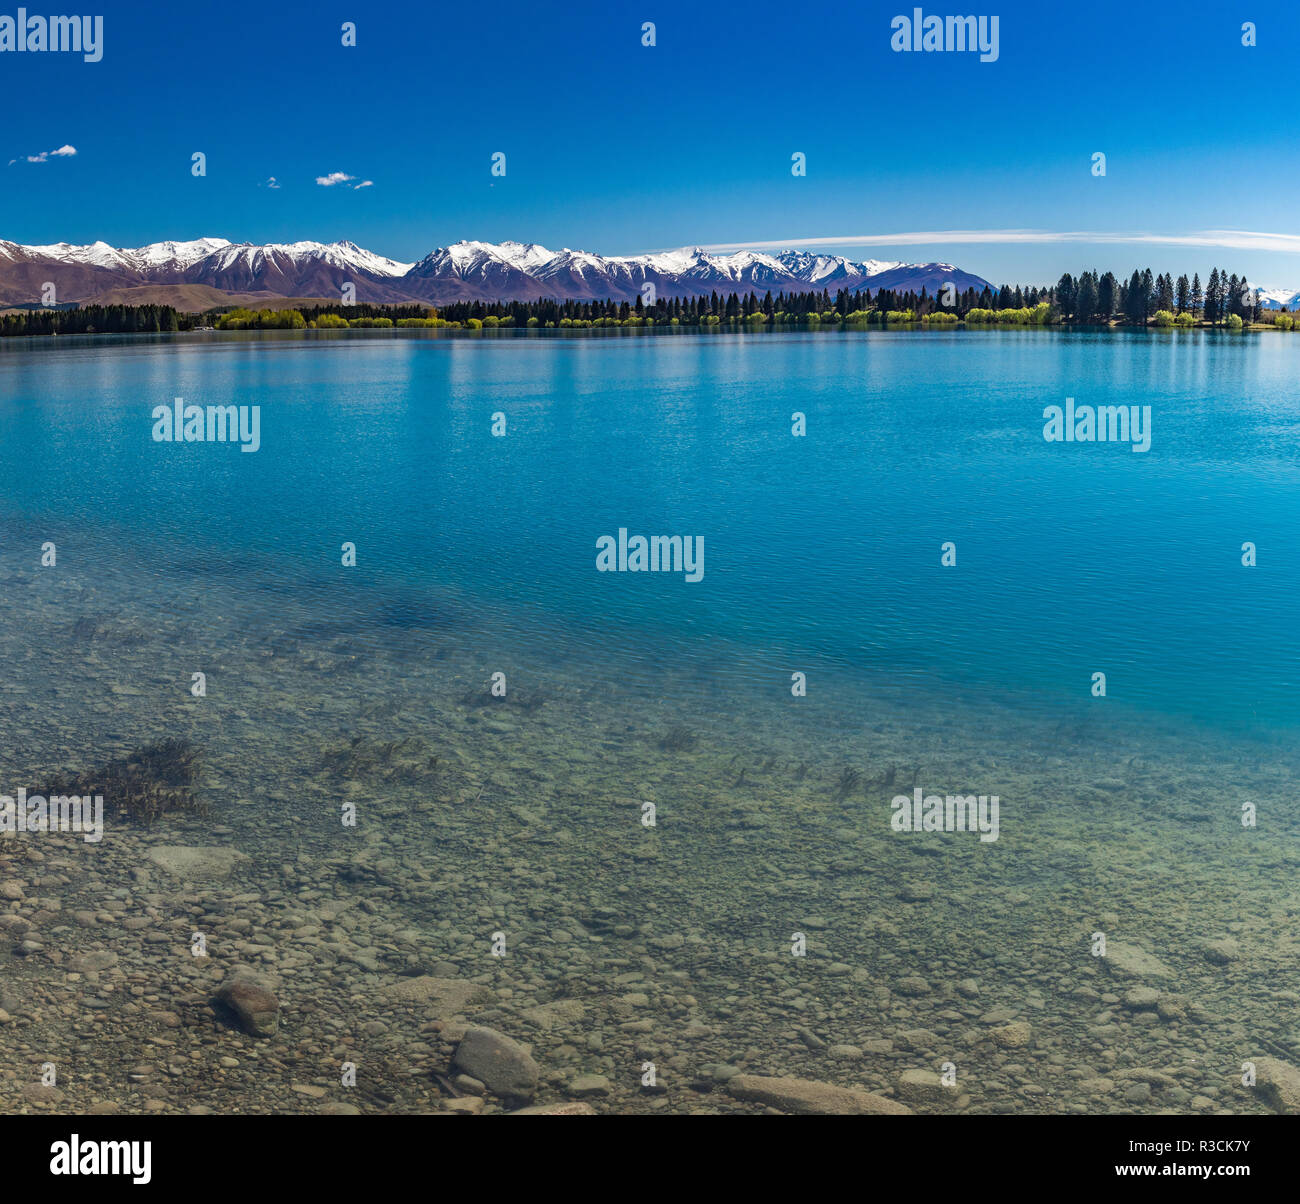 Lake Ruataniwha, New Zealand, South Island, trees and mountains, water reflections - Stock Image